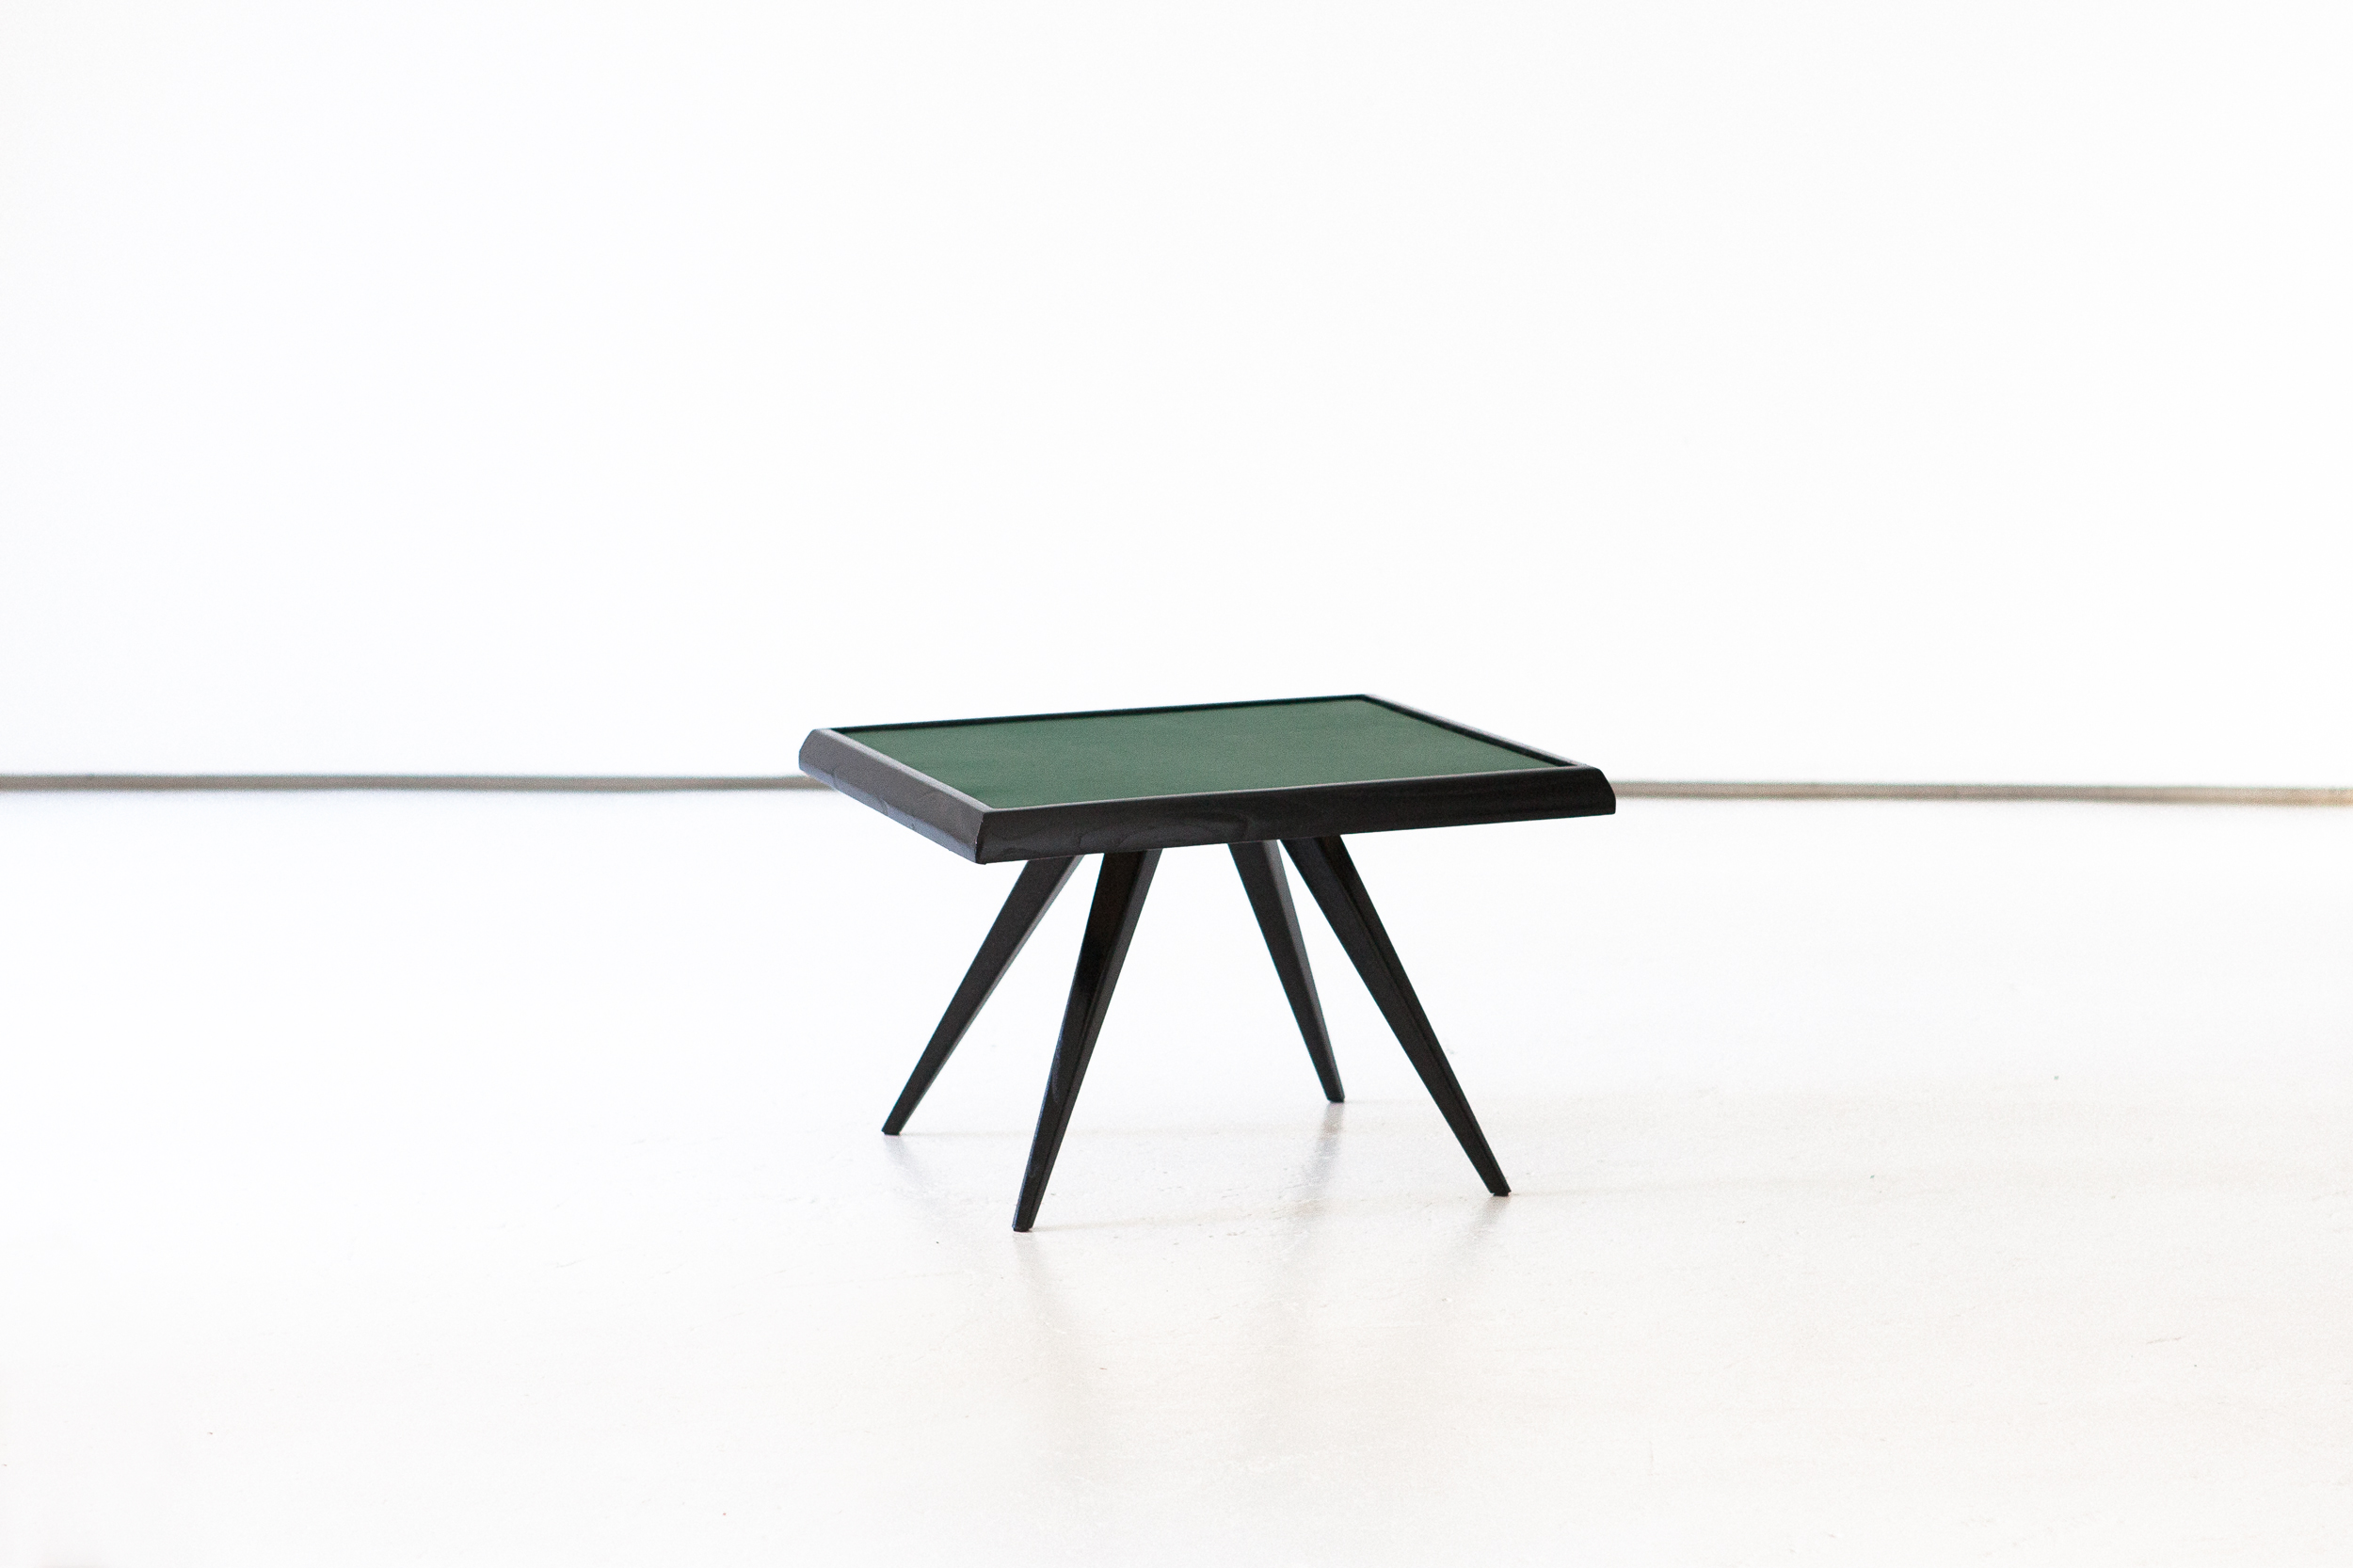 table-75.3